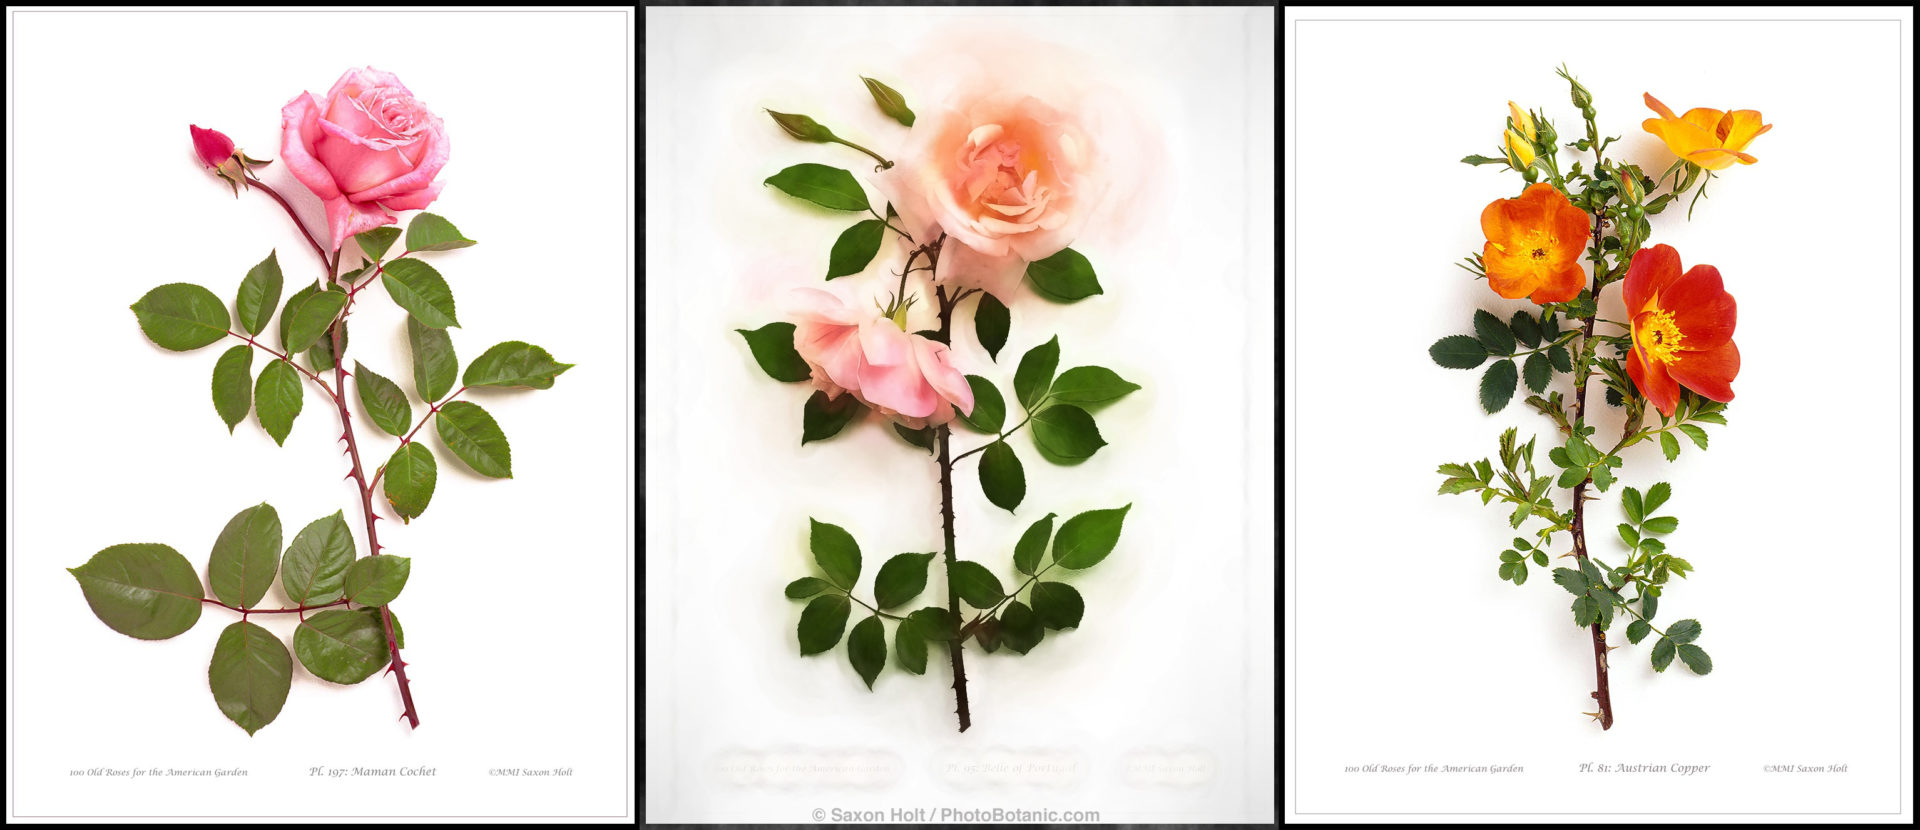 3 Roses for Smith & Hawken rose books - photographic illustrations bty Saxon Holt